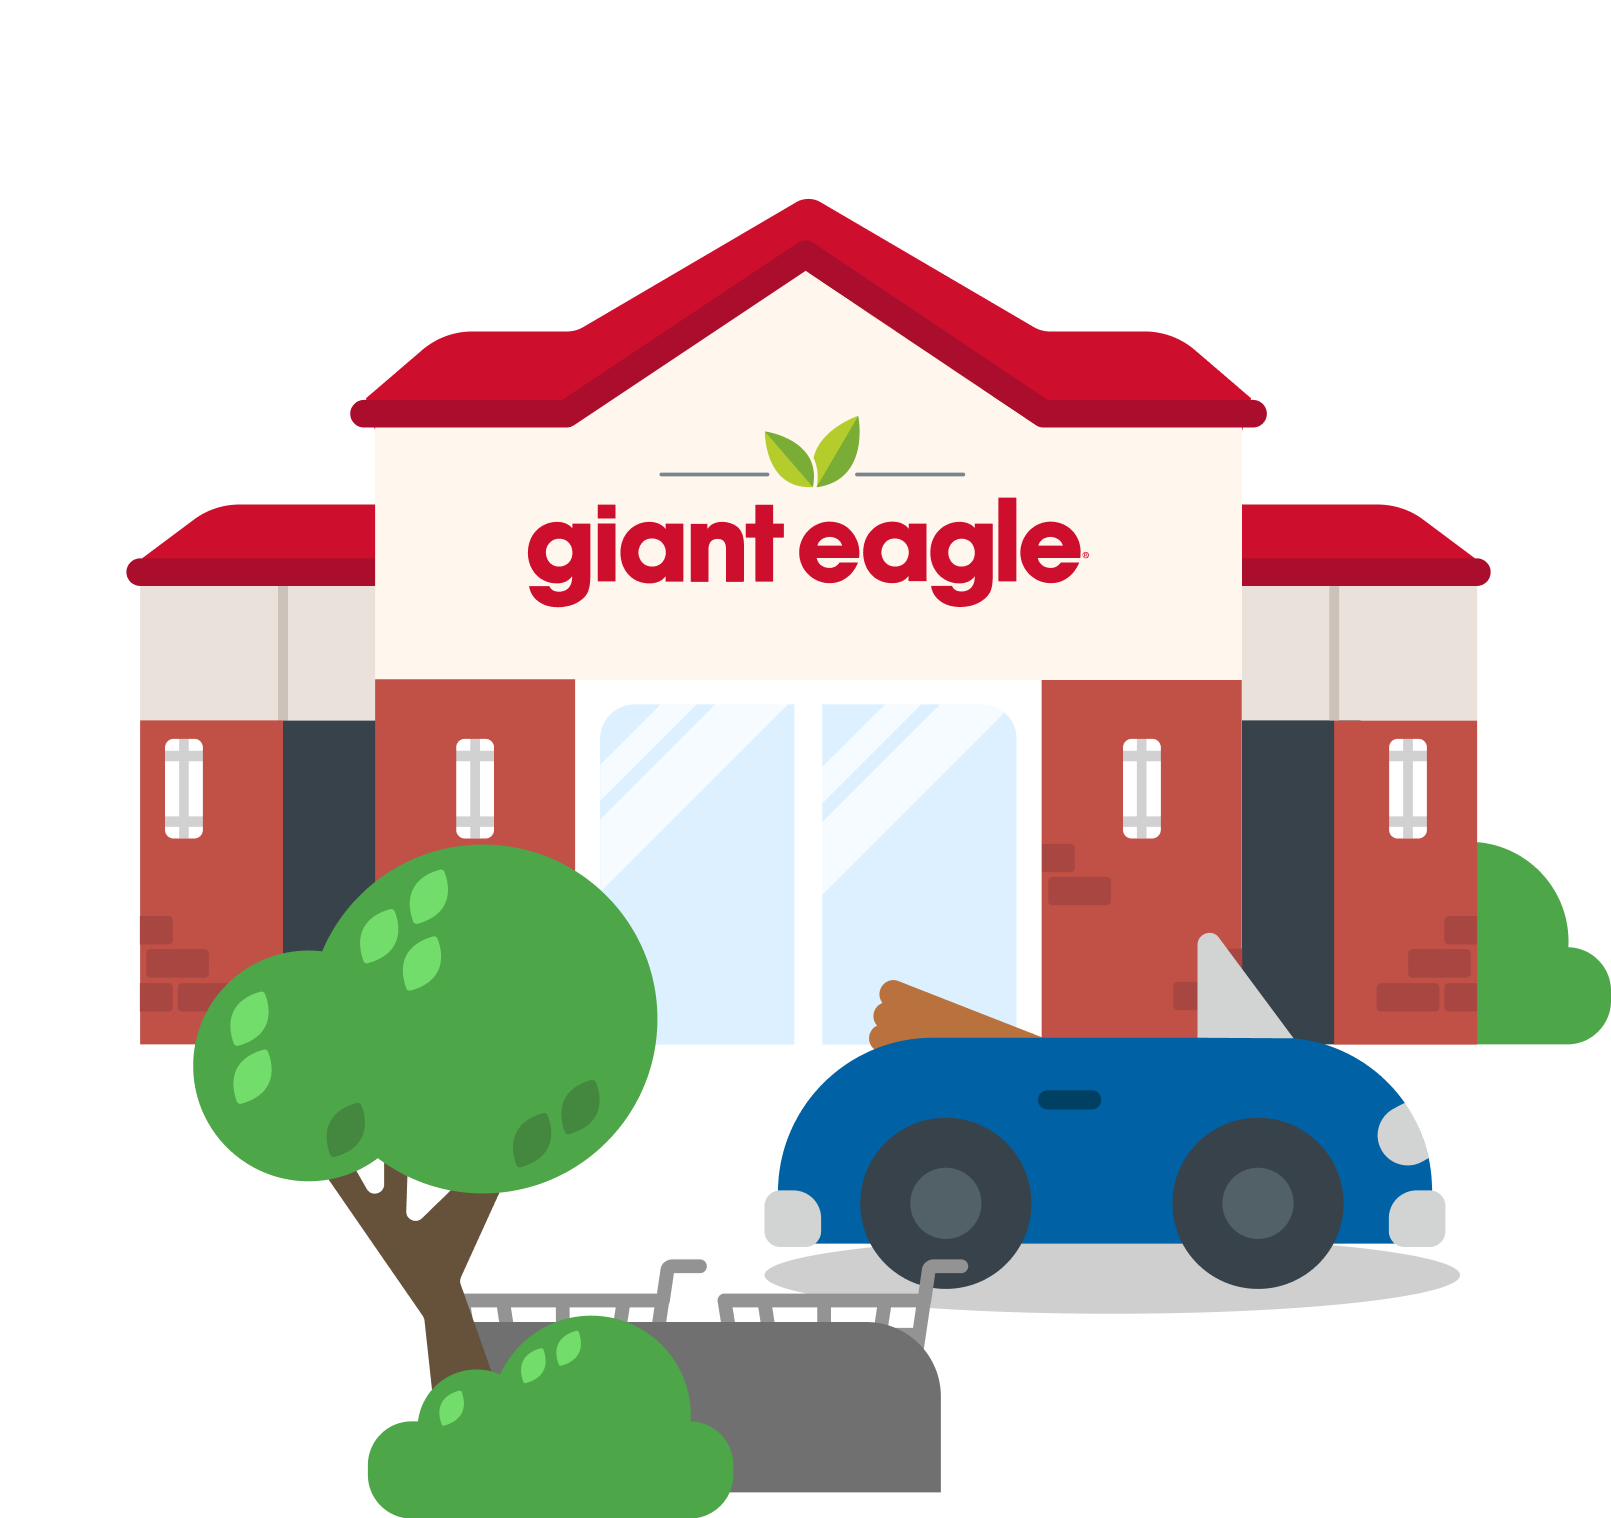 Illustration of a Giant Eagle supermarket with a blue sky background